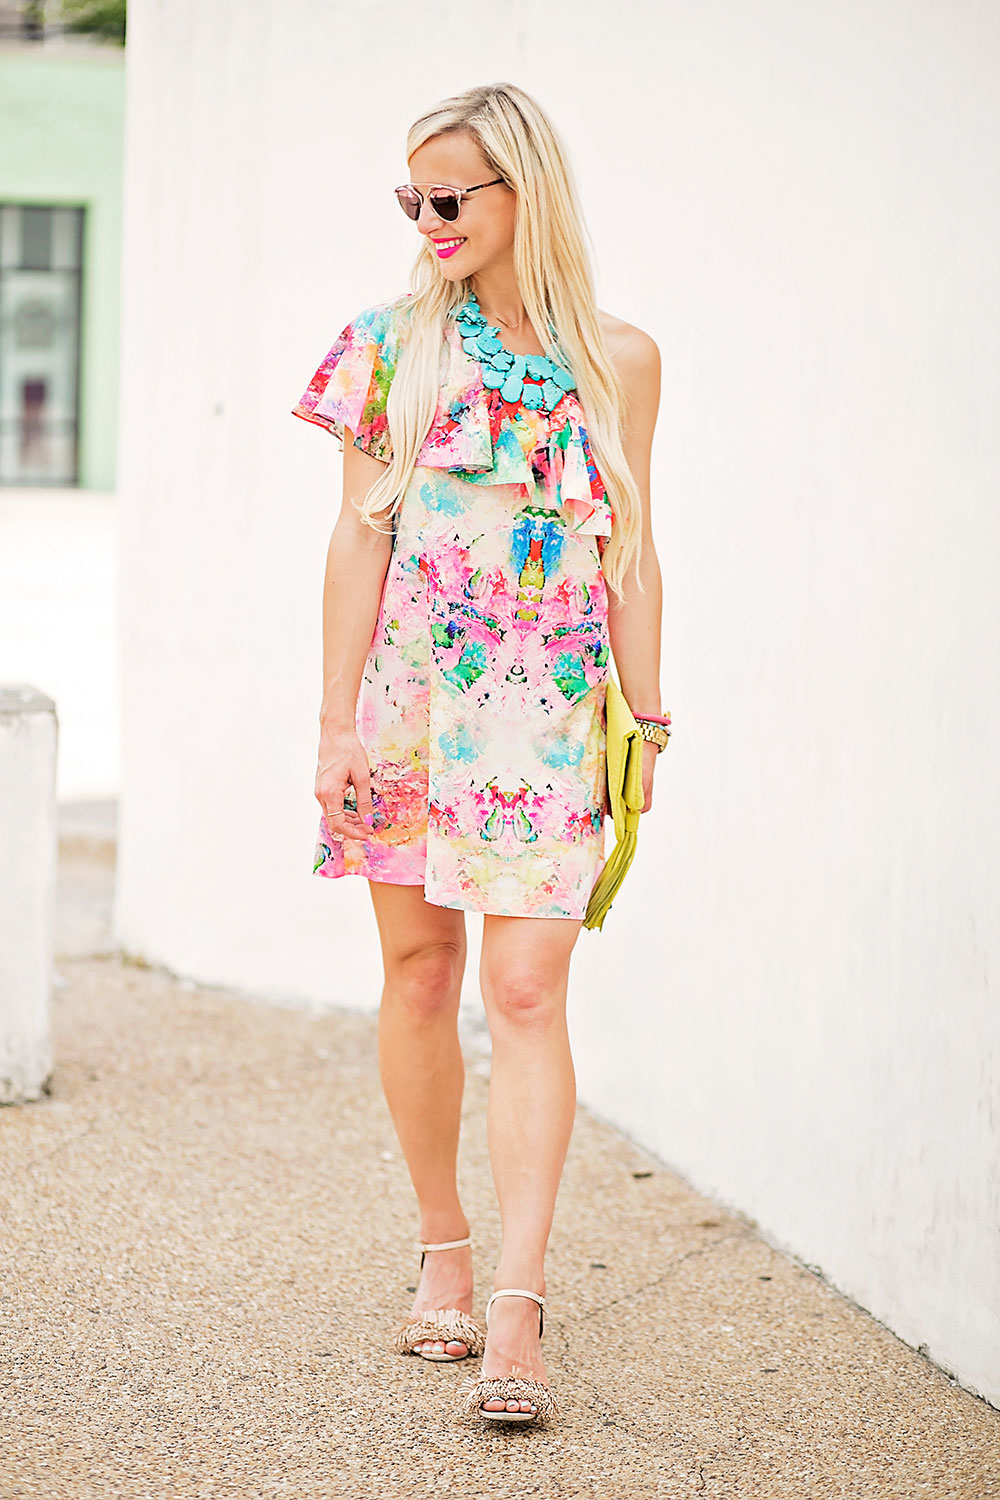 vandi-fair-blog-lauren-vandiver-dallas-texas-southern-fashion-blogger-nordstrom-amanda-a-zoe-floral-print-one-shoulder-dress-gigi-new-york-stella-fold-over-clutch